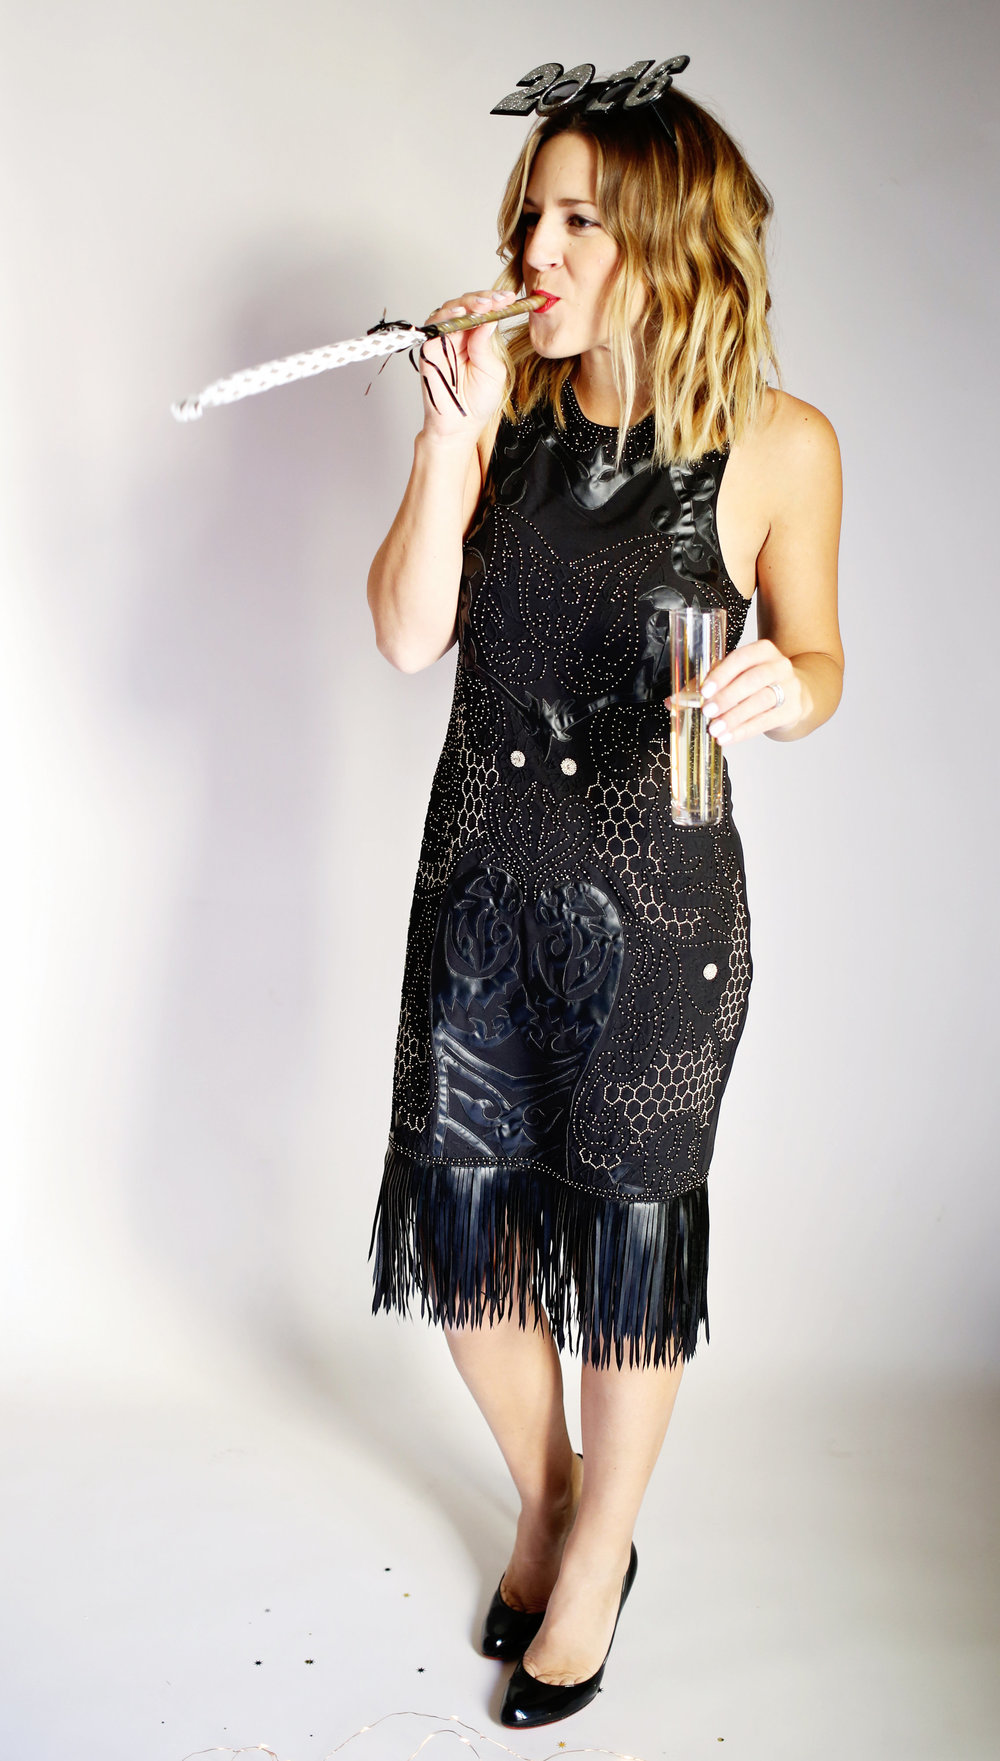 New years eve outfit by yoana baraschi 13.jpg